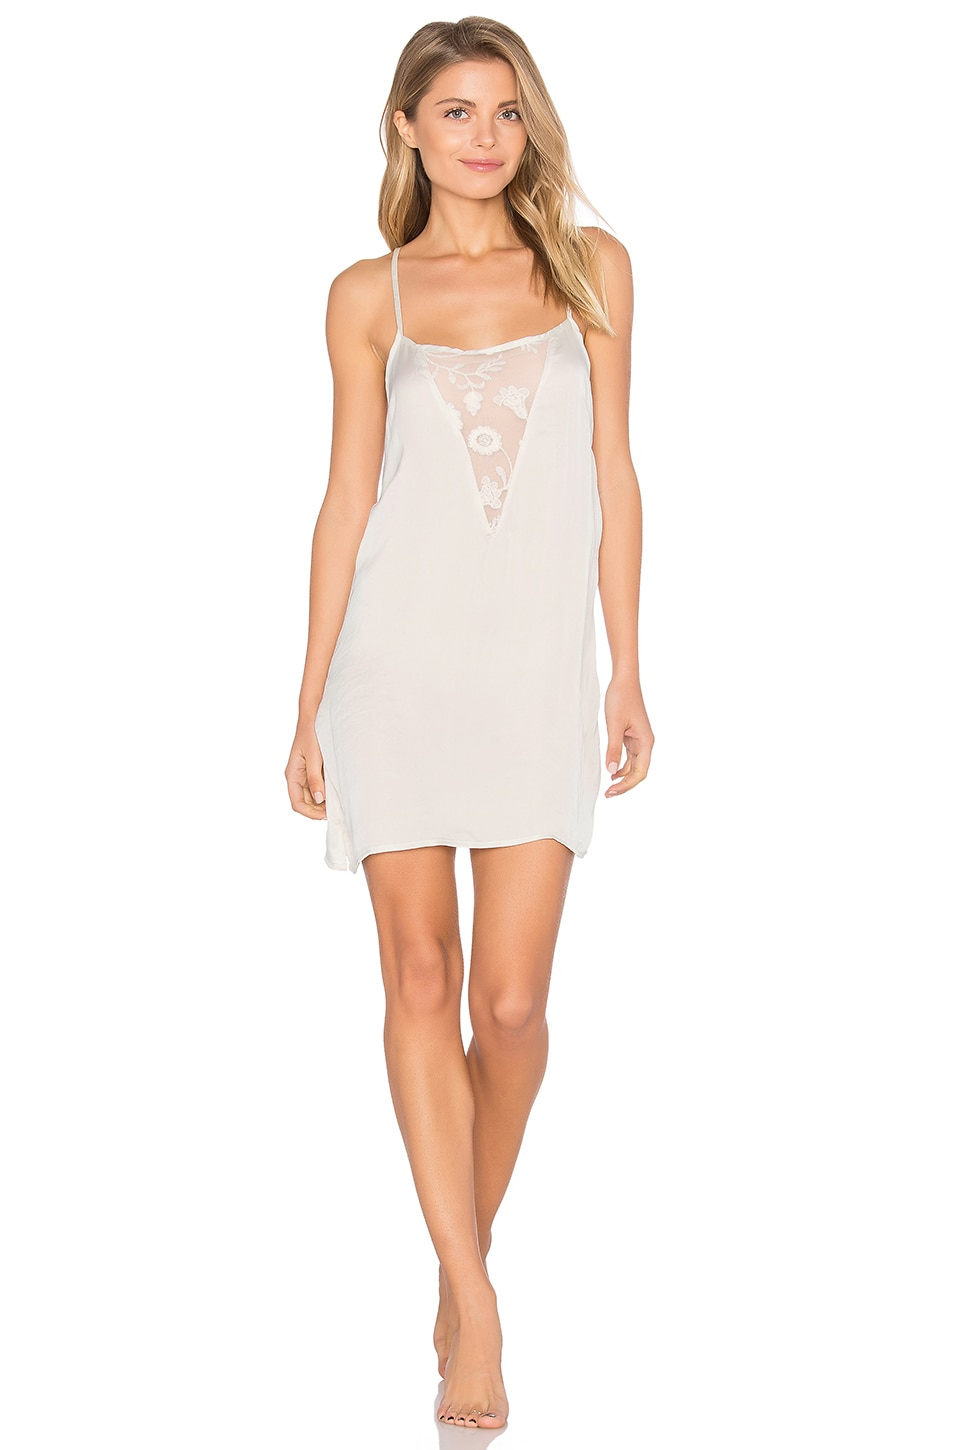 Lace Chemise by Band of Gypsies